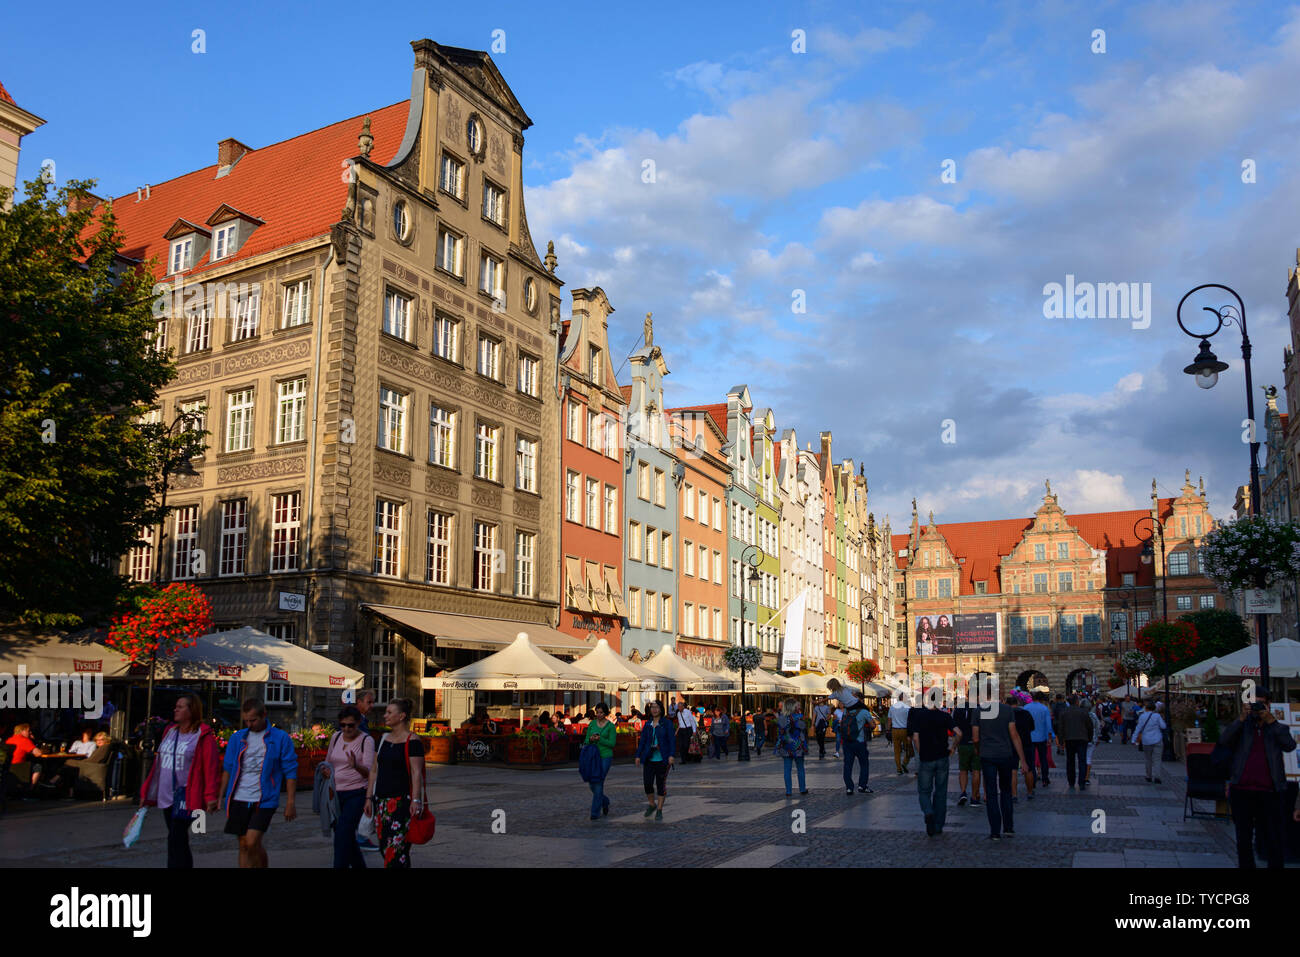 Long Market and Green Gate, Dlugi Targ, old town, Danzig, Pommerania, Poland Stock Photo